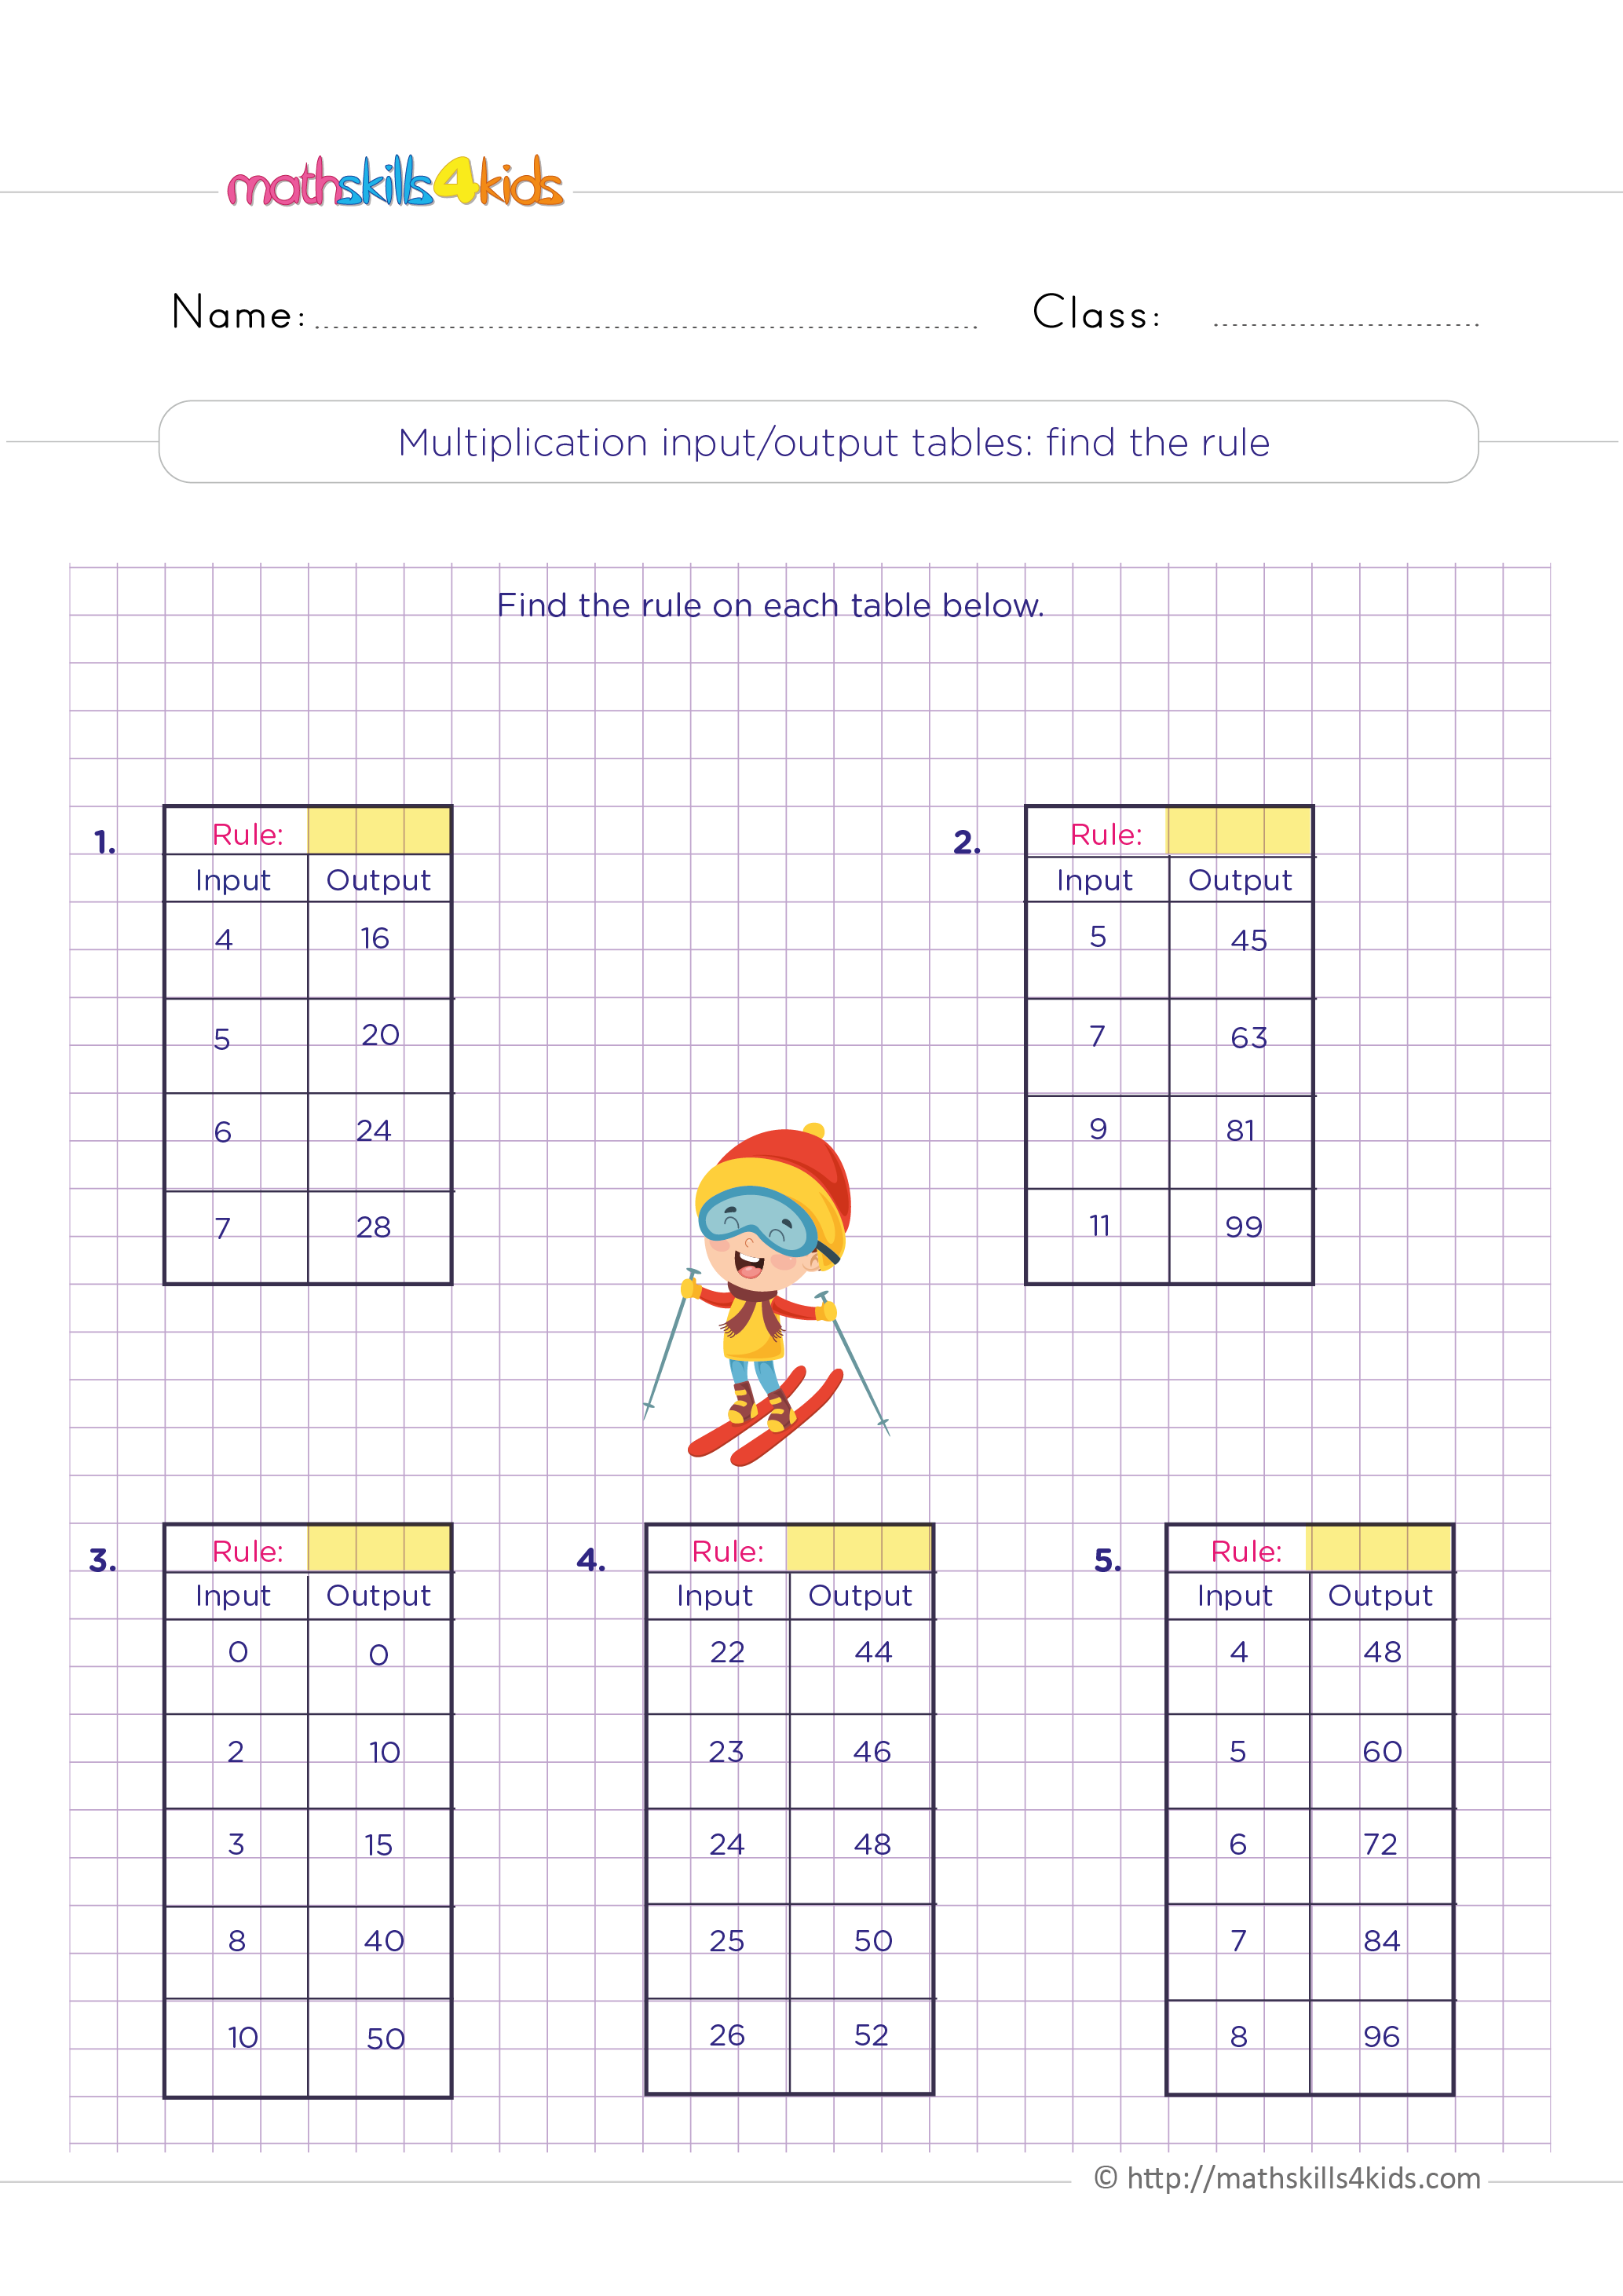 Multiplication Worksheets Grade 4 printable with answers - Multiplication input-output tables find the rule